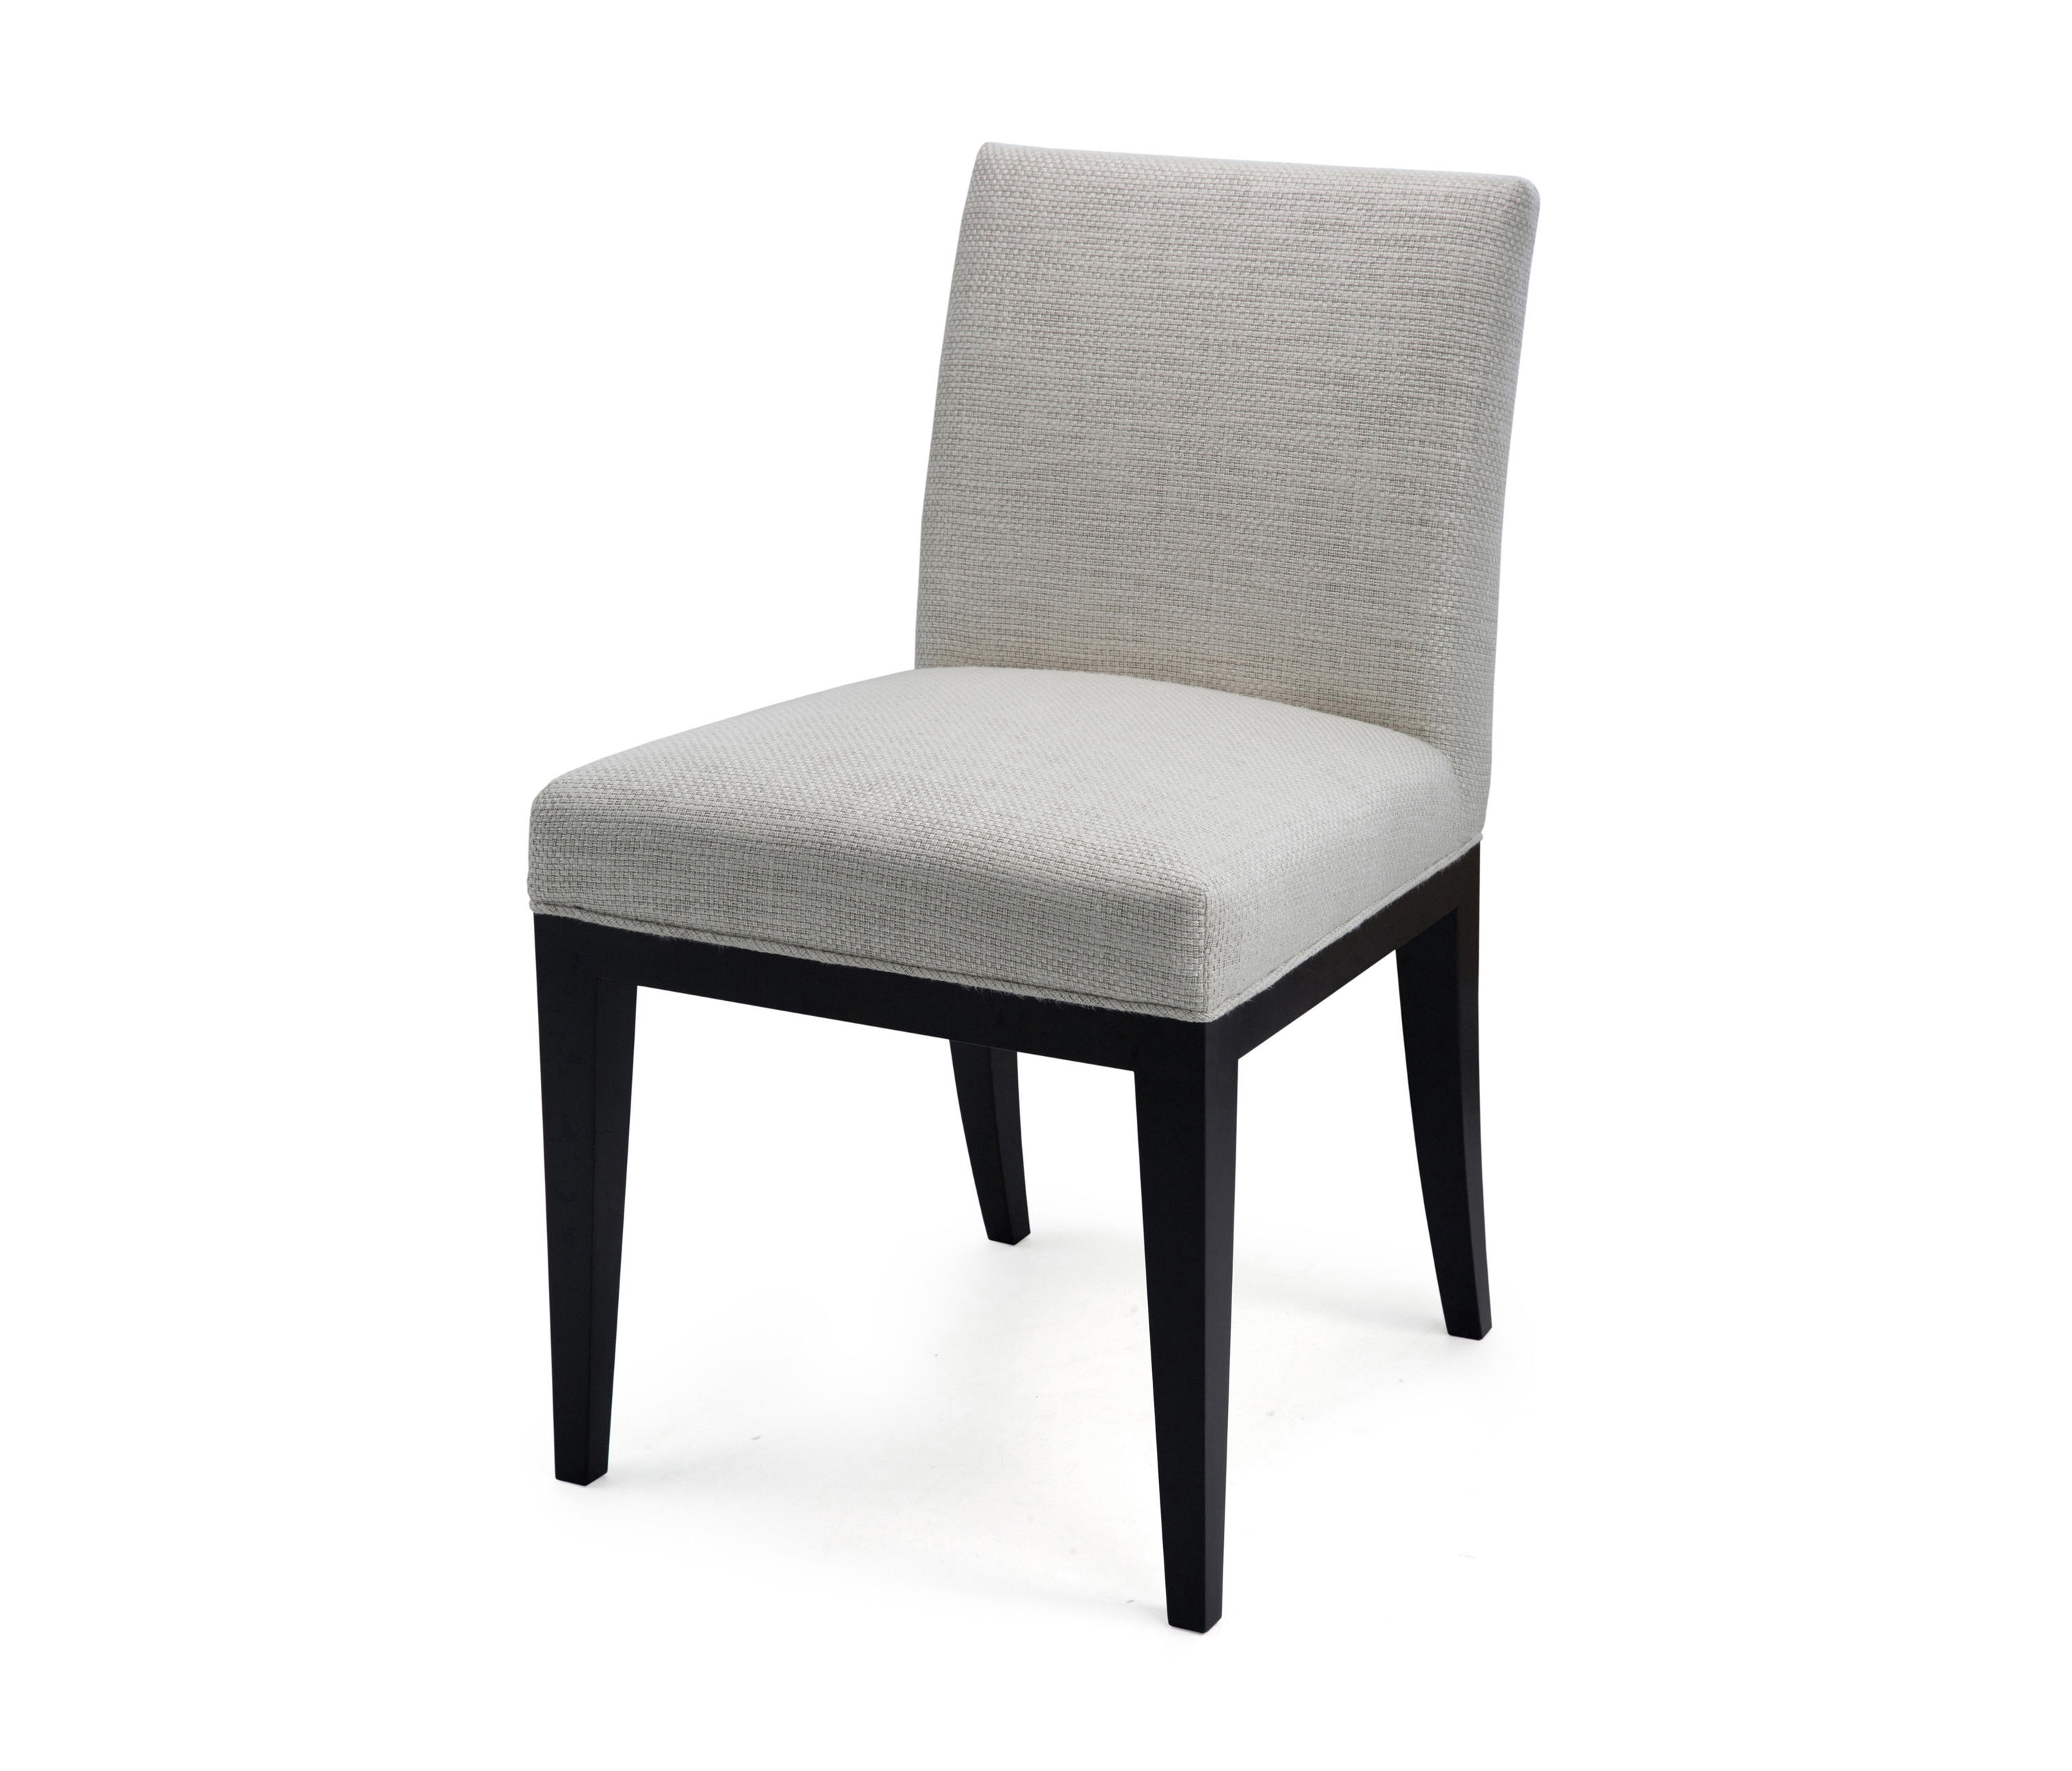 Byron dining chair restaurant chairs from the sofa for Restaurant furniture